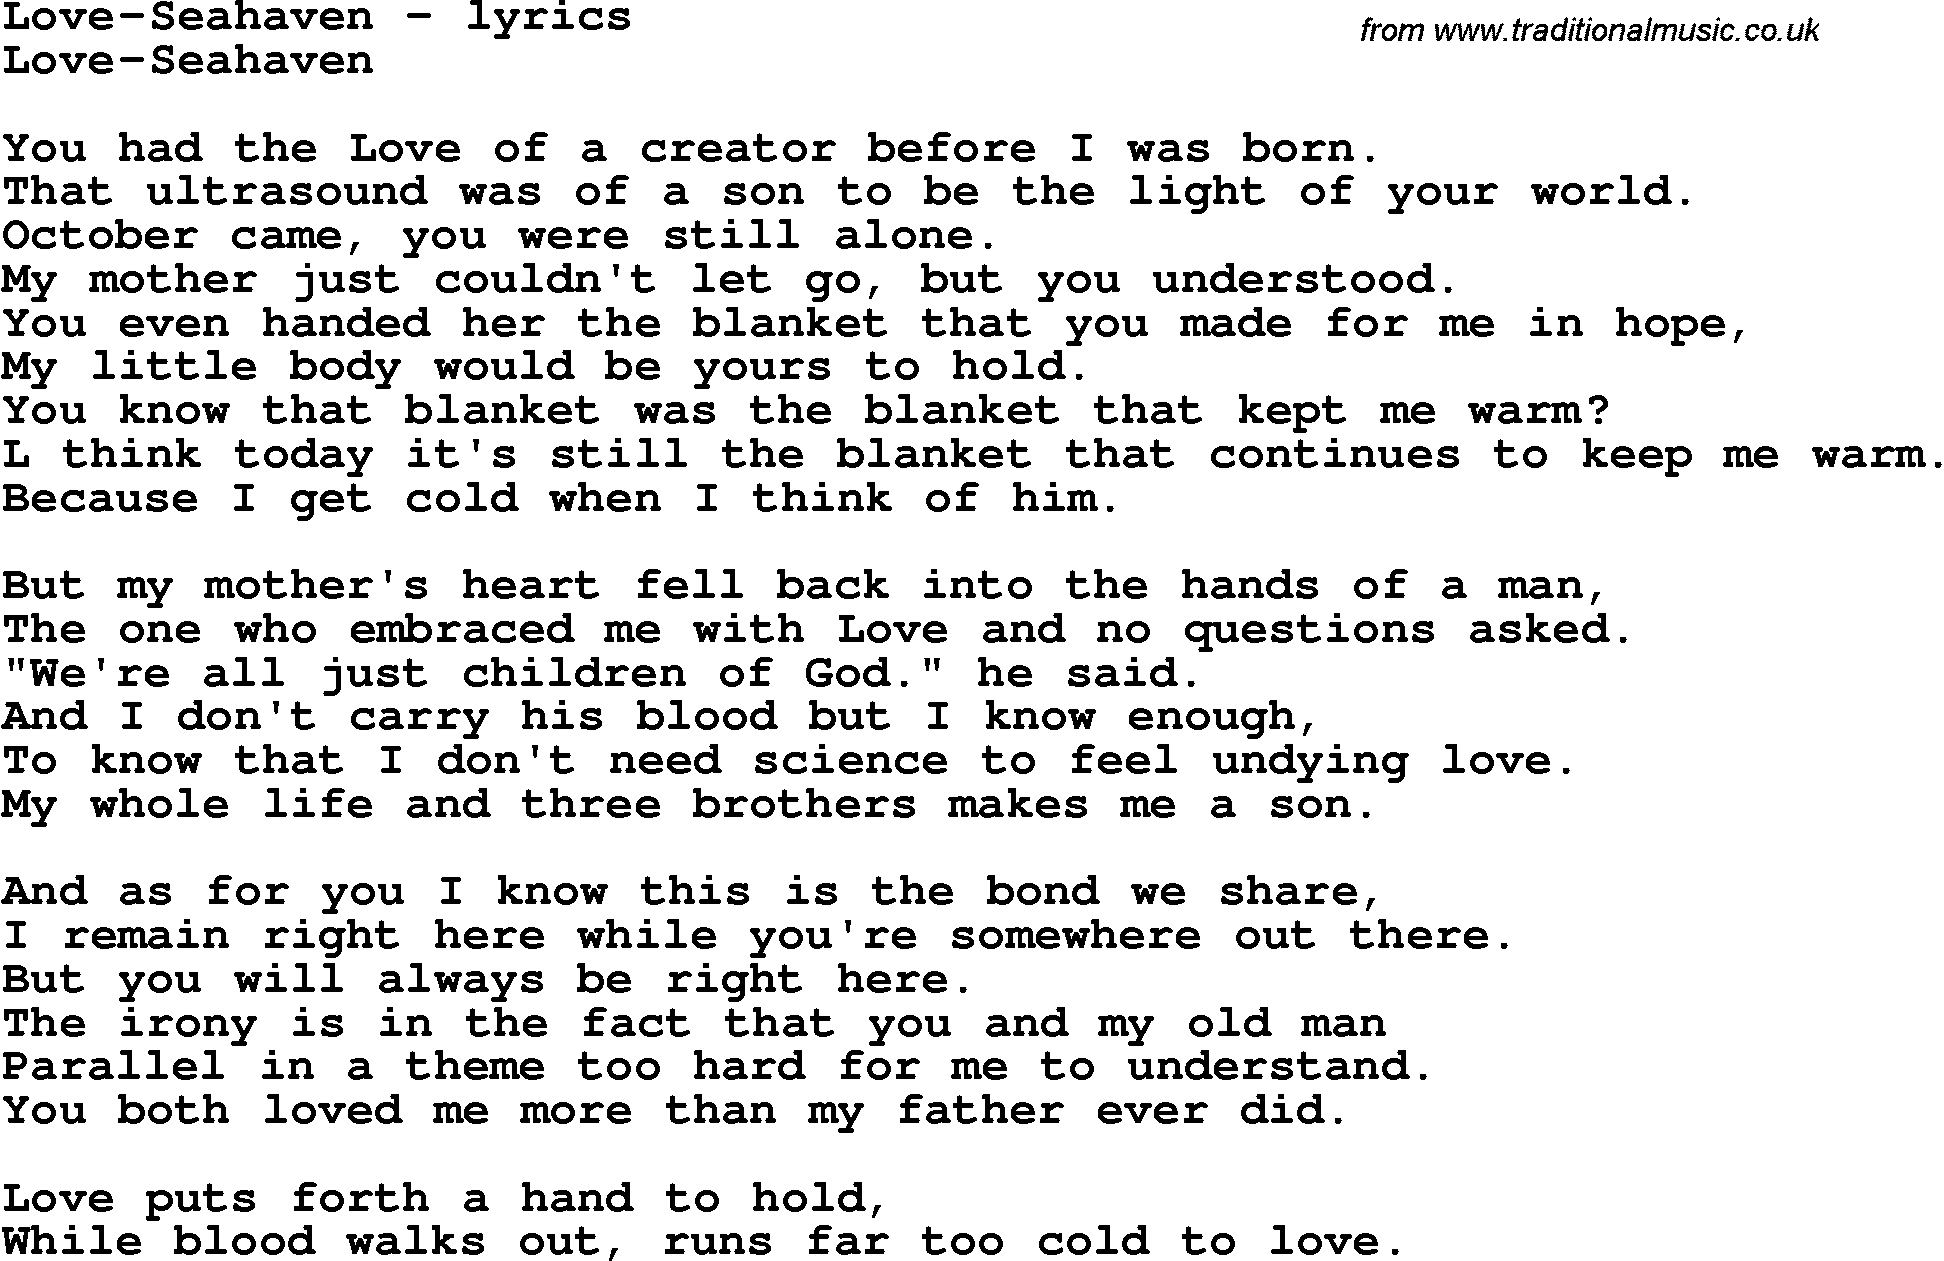 Love Song Lyrics for:Love-Seahaven